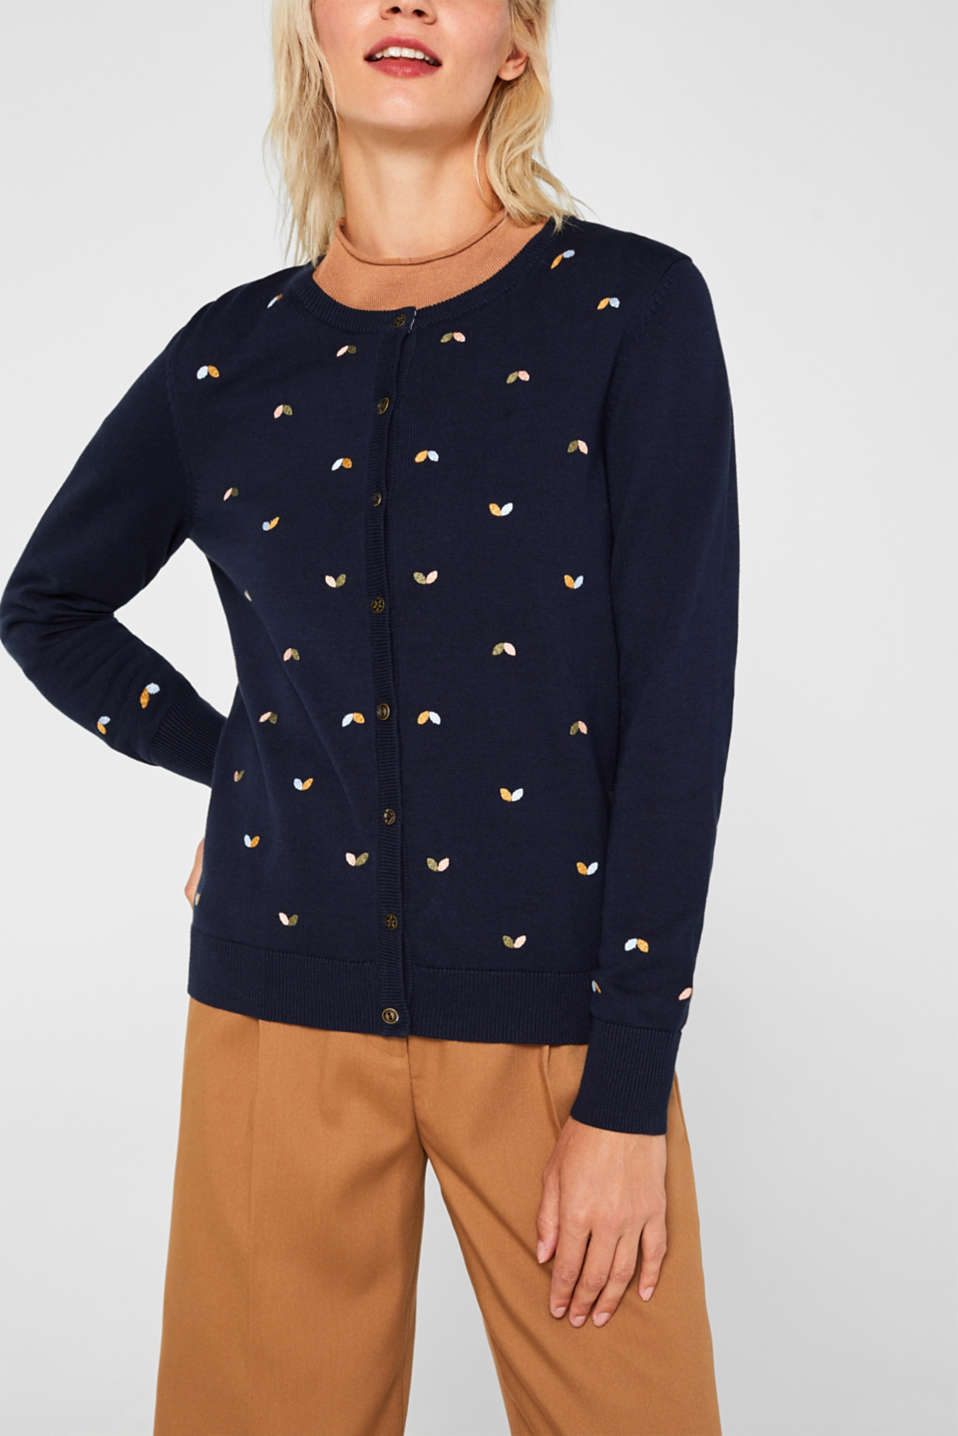 Cardigan with embroidery, 100% cotton, NAVY 2, detail image number 5